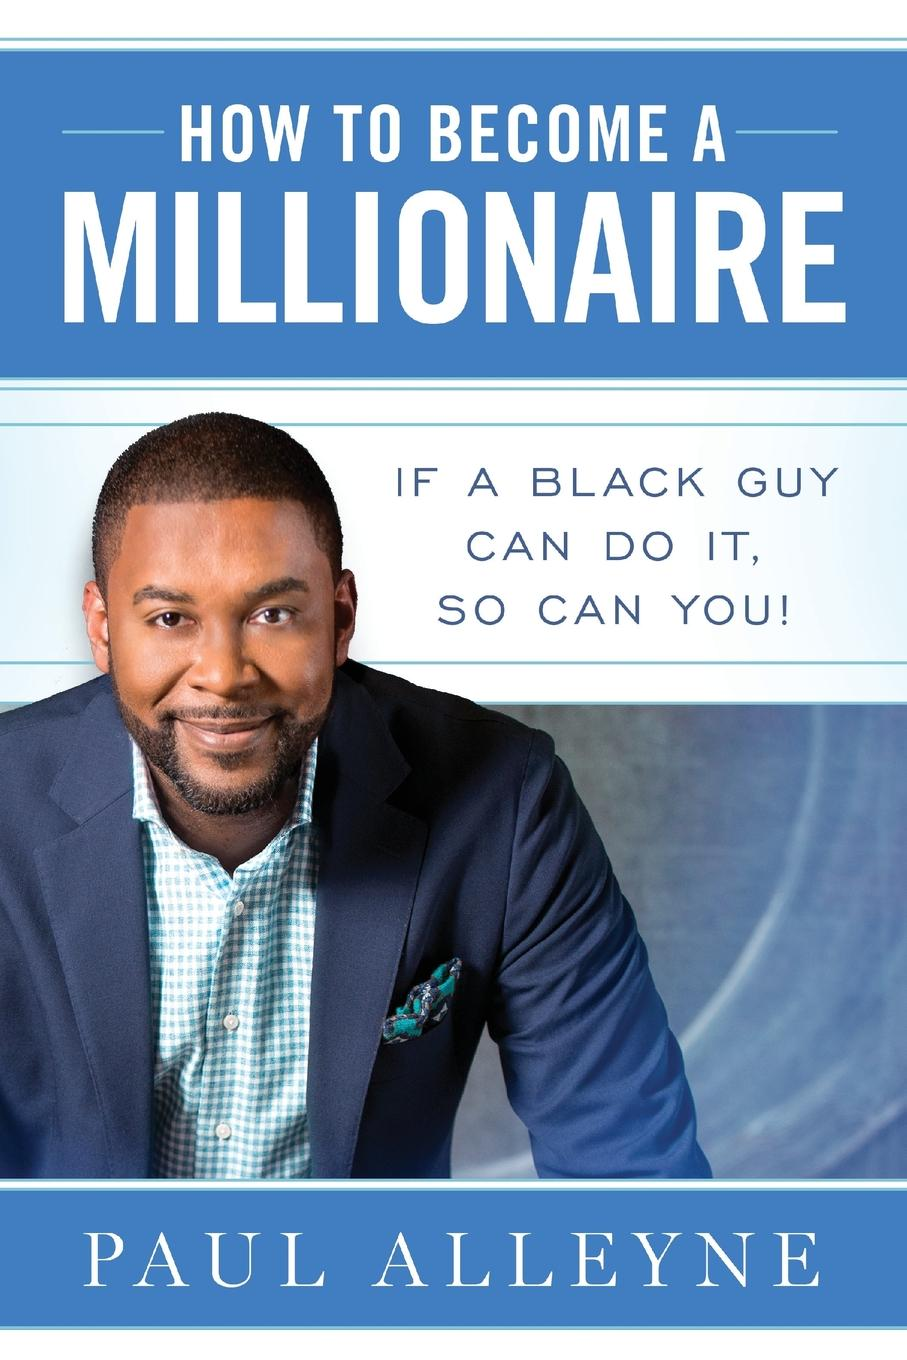 Paul Alleyne How To Become A Millionaire. If A Black Guy Can Do It, So Can You. chloe seager editing emma online you can choose who you want to be if only real life were so easy